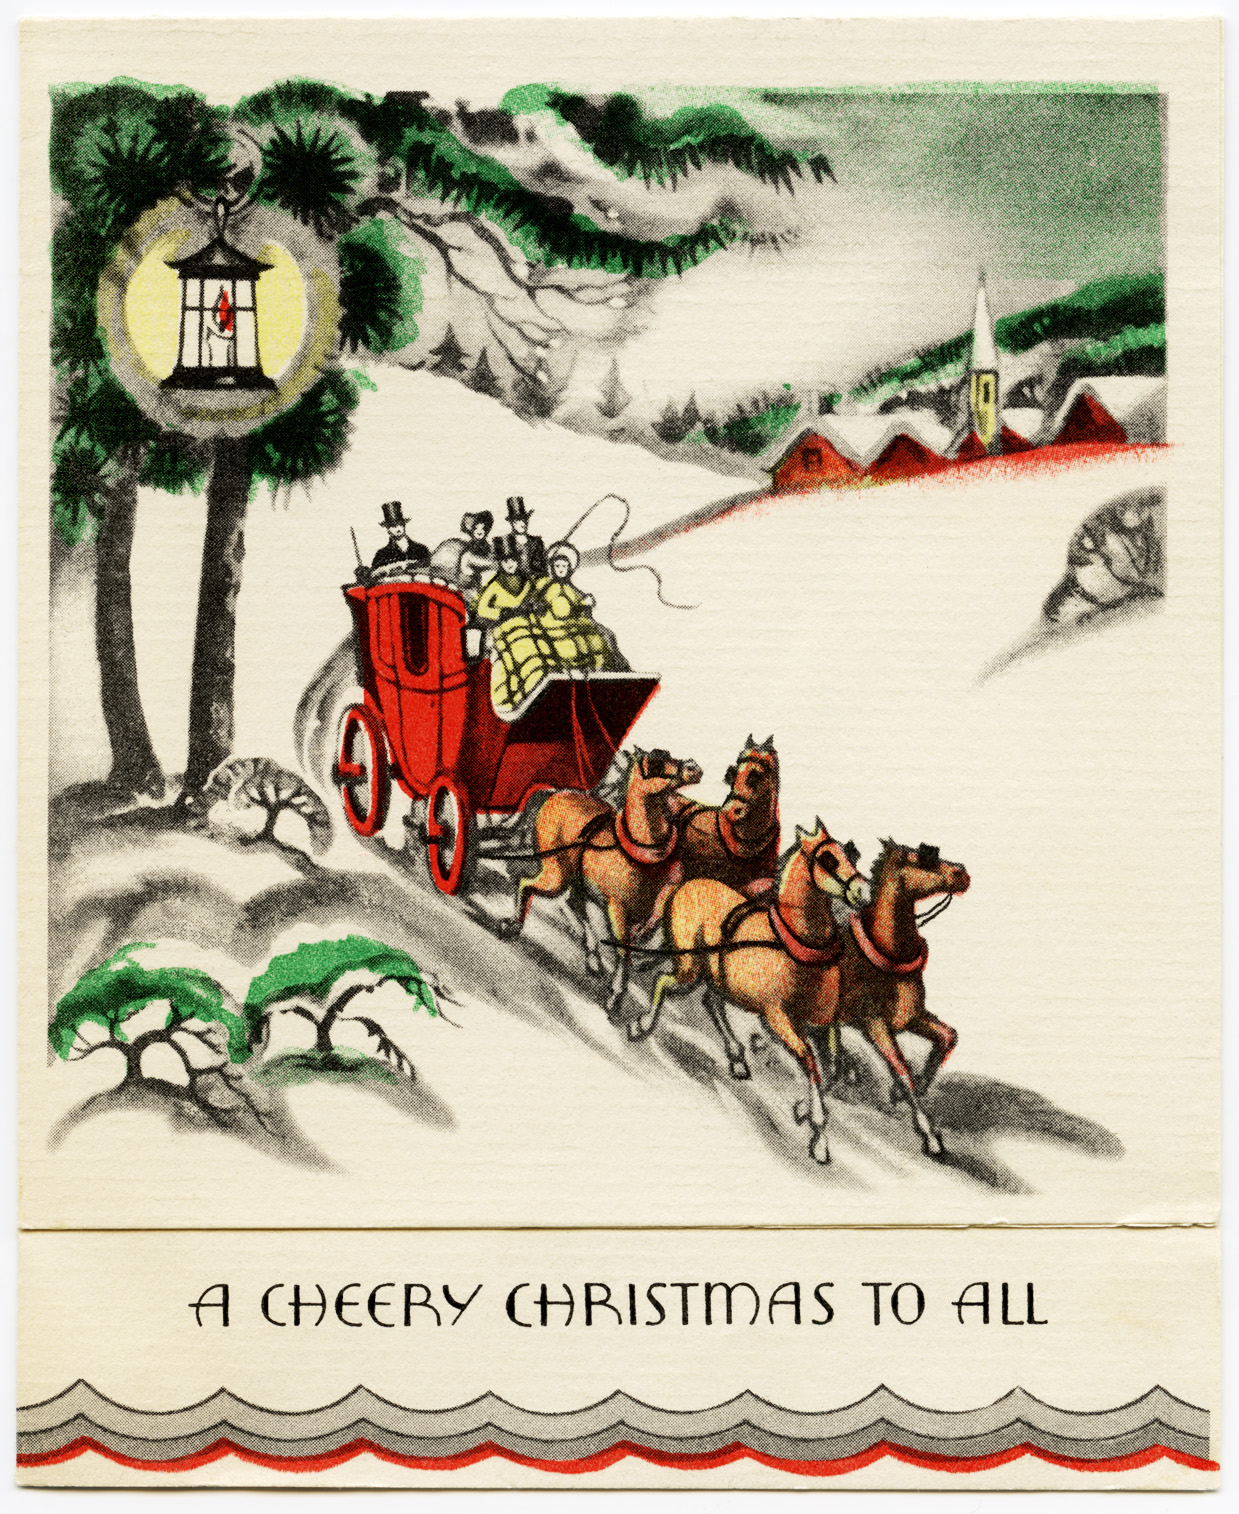 13 Vintage Christmas Card Graphics Free Images